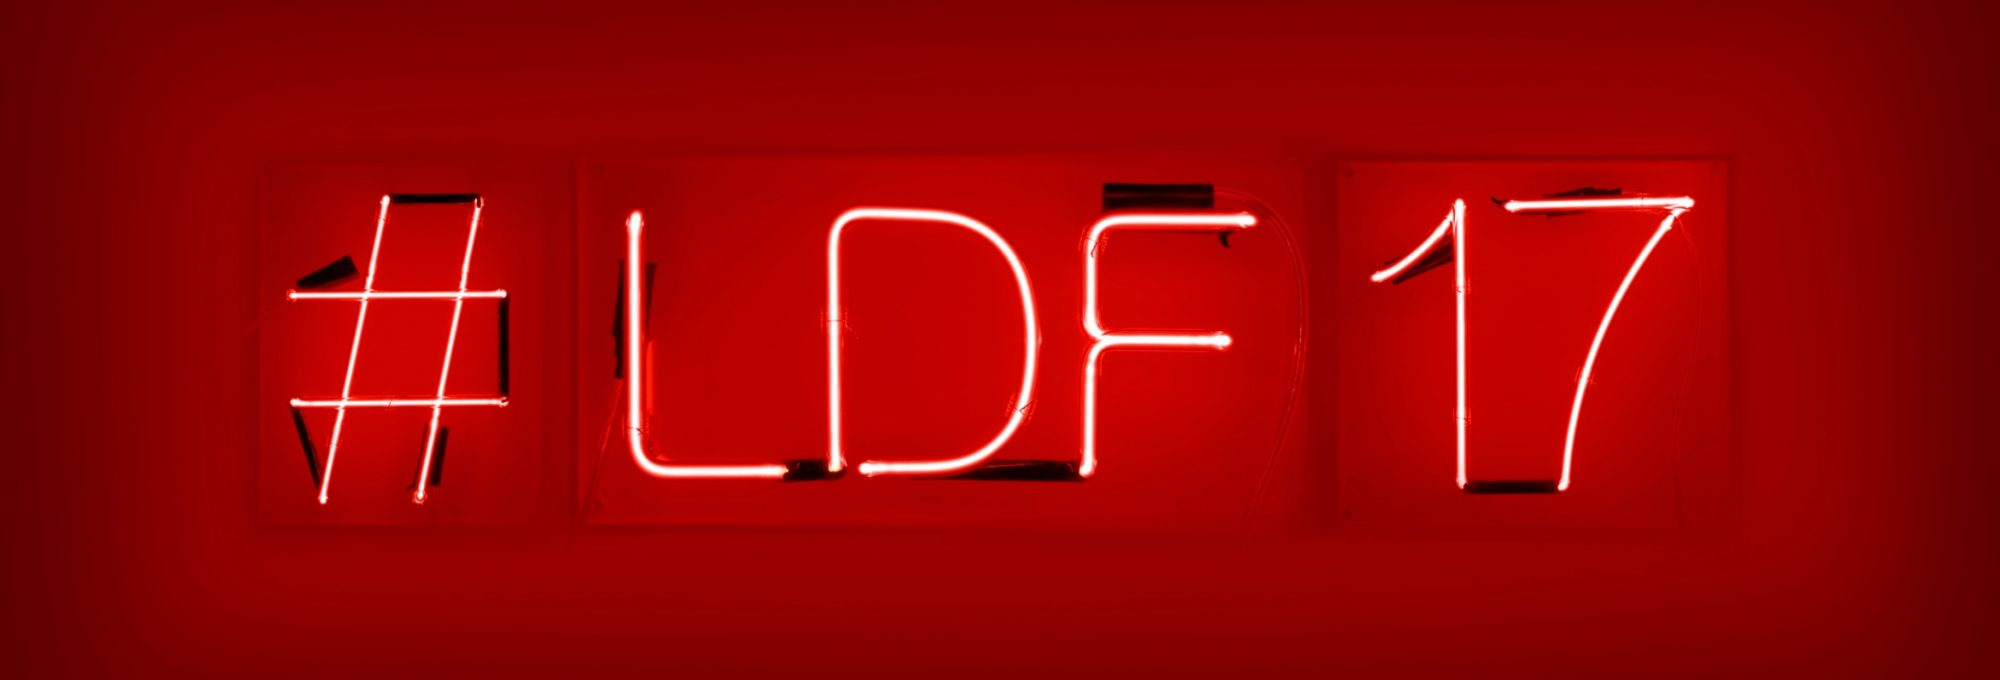 Best Design Events: What to Expect from the London Design Festival 2017 > Daily Design News > The latest news on interior design > #londondesignfestival #interiordesign #dailydesignnews